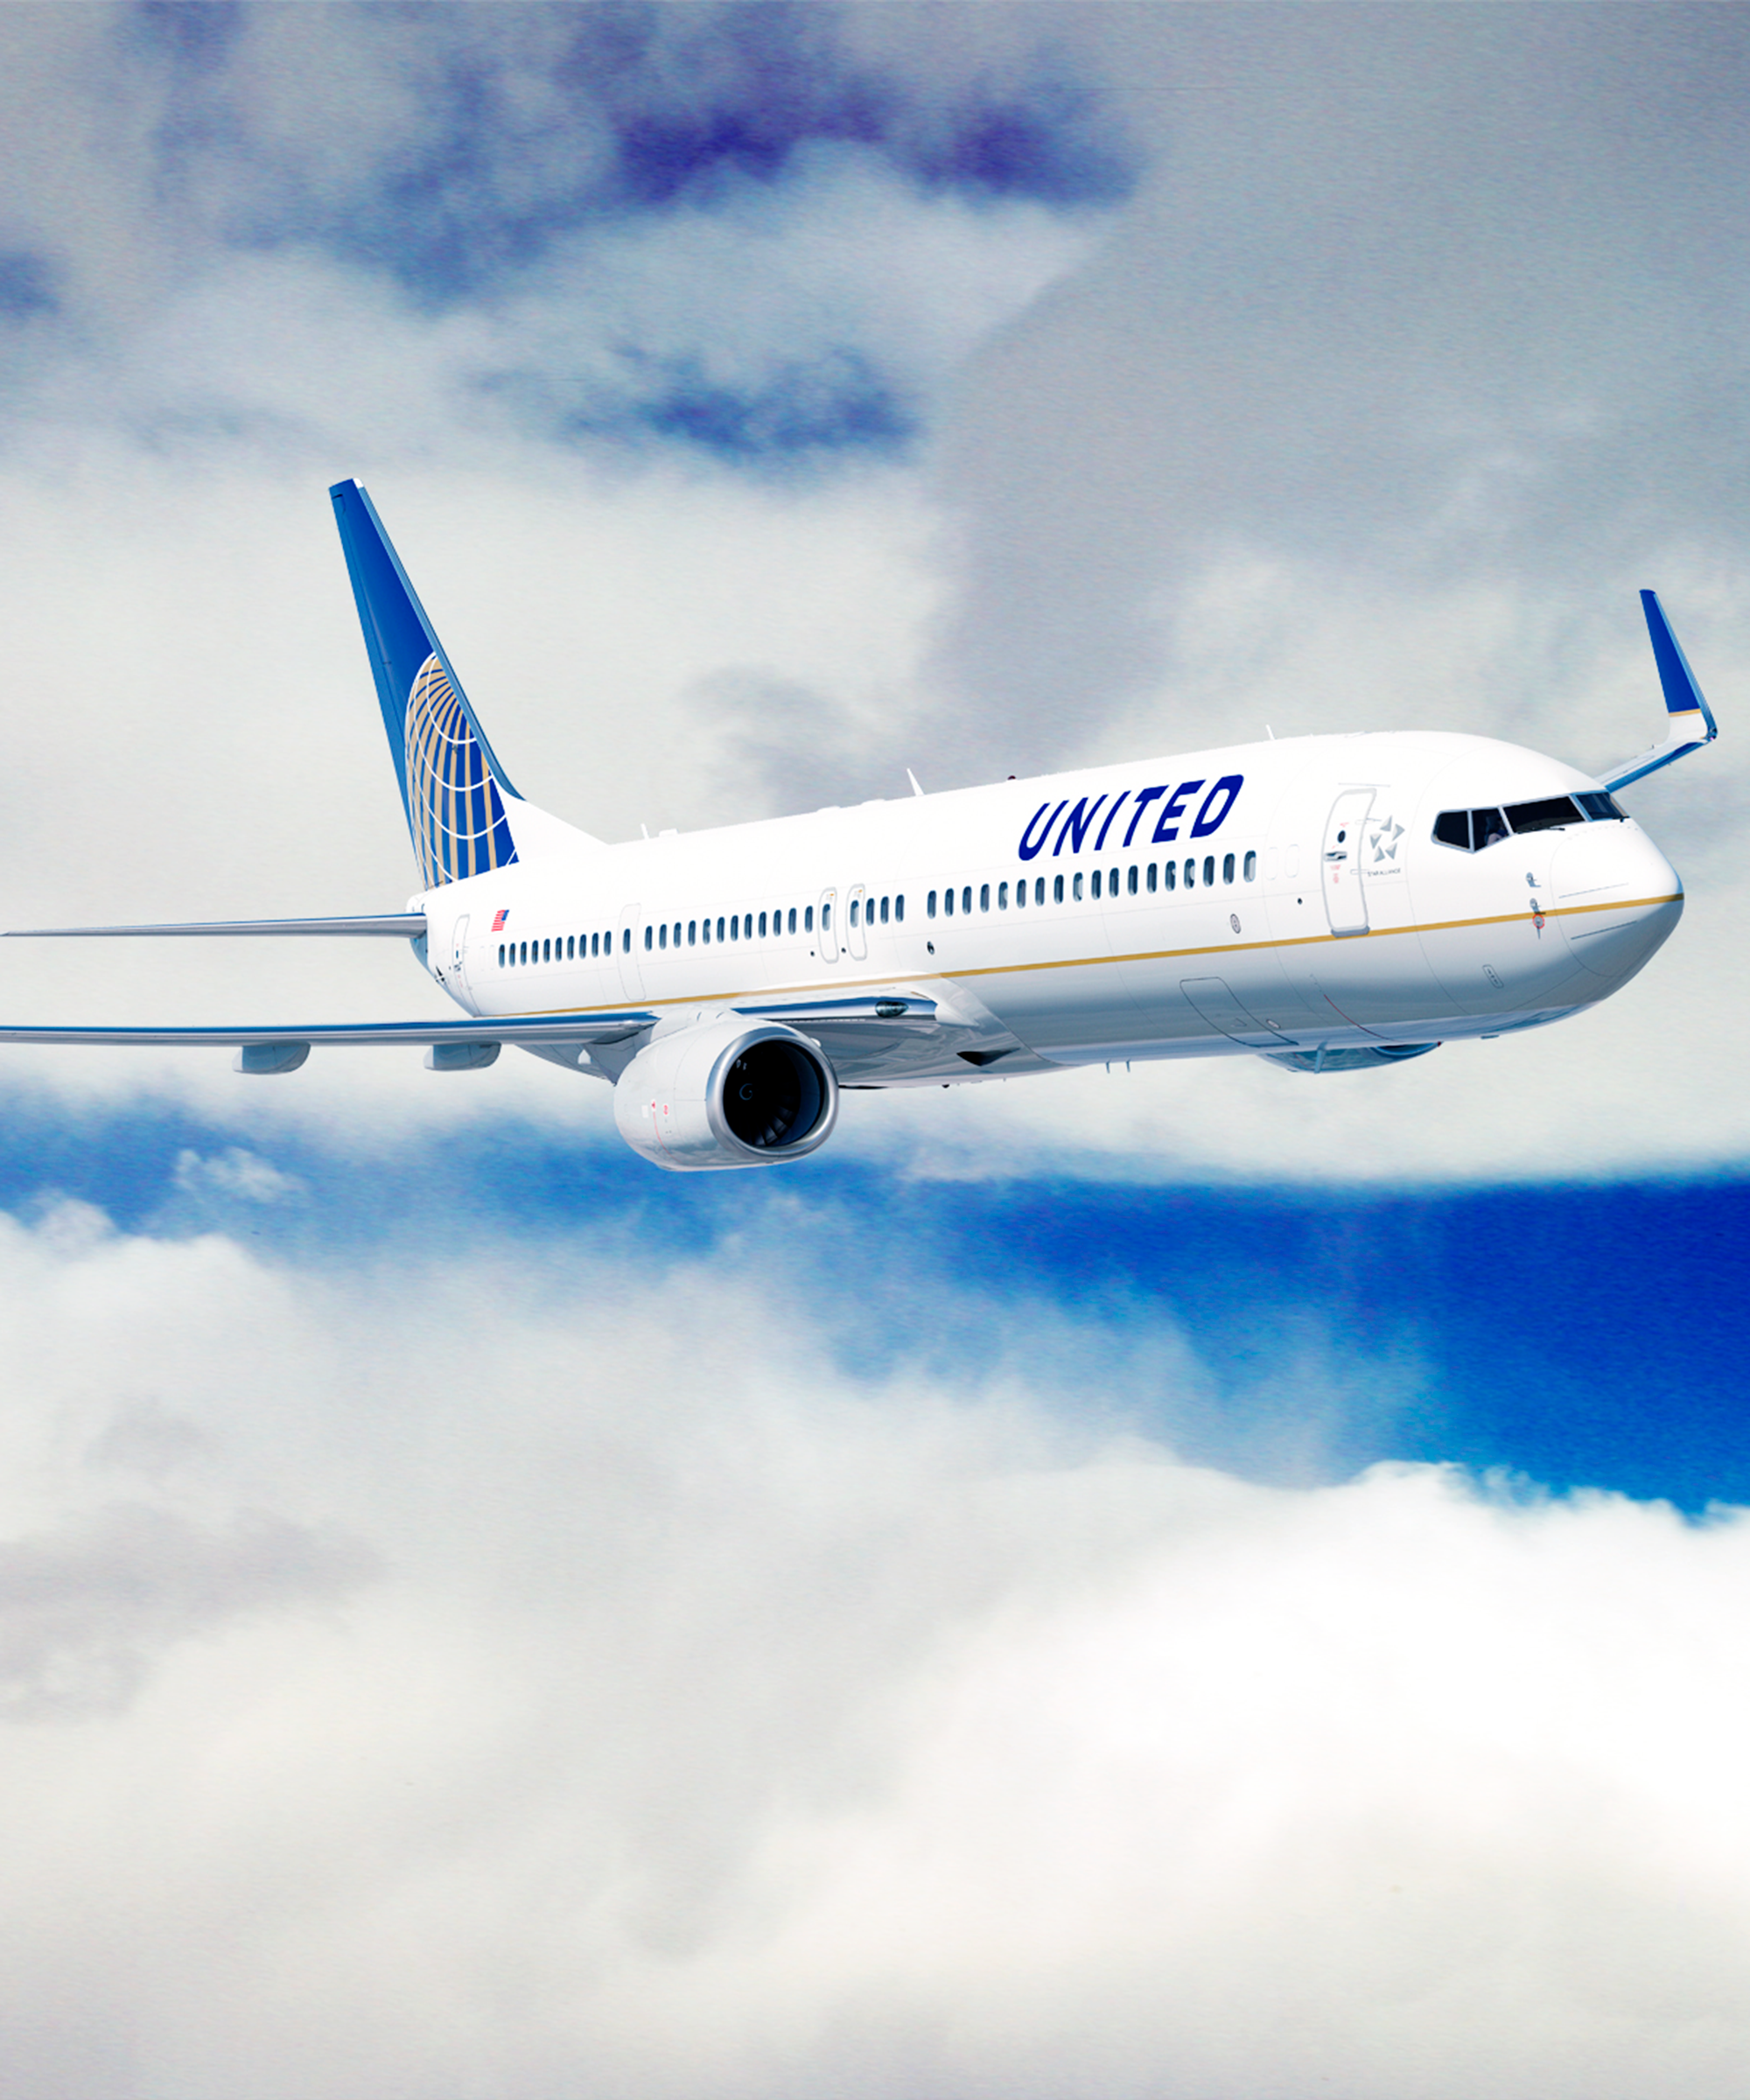 United to pay passengers thousands to give up seats